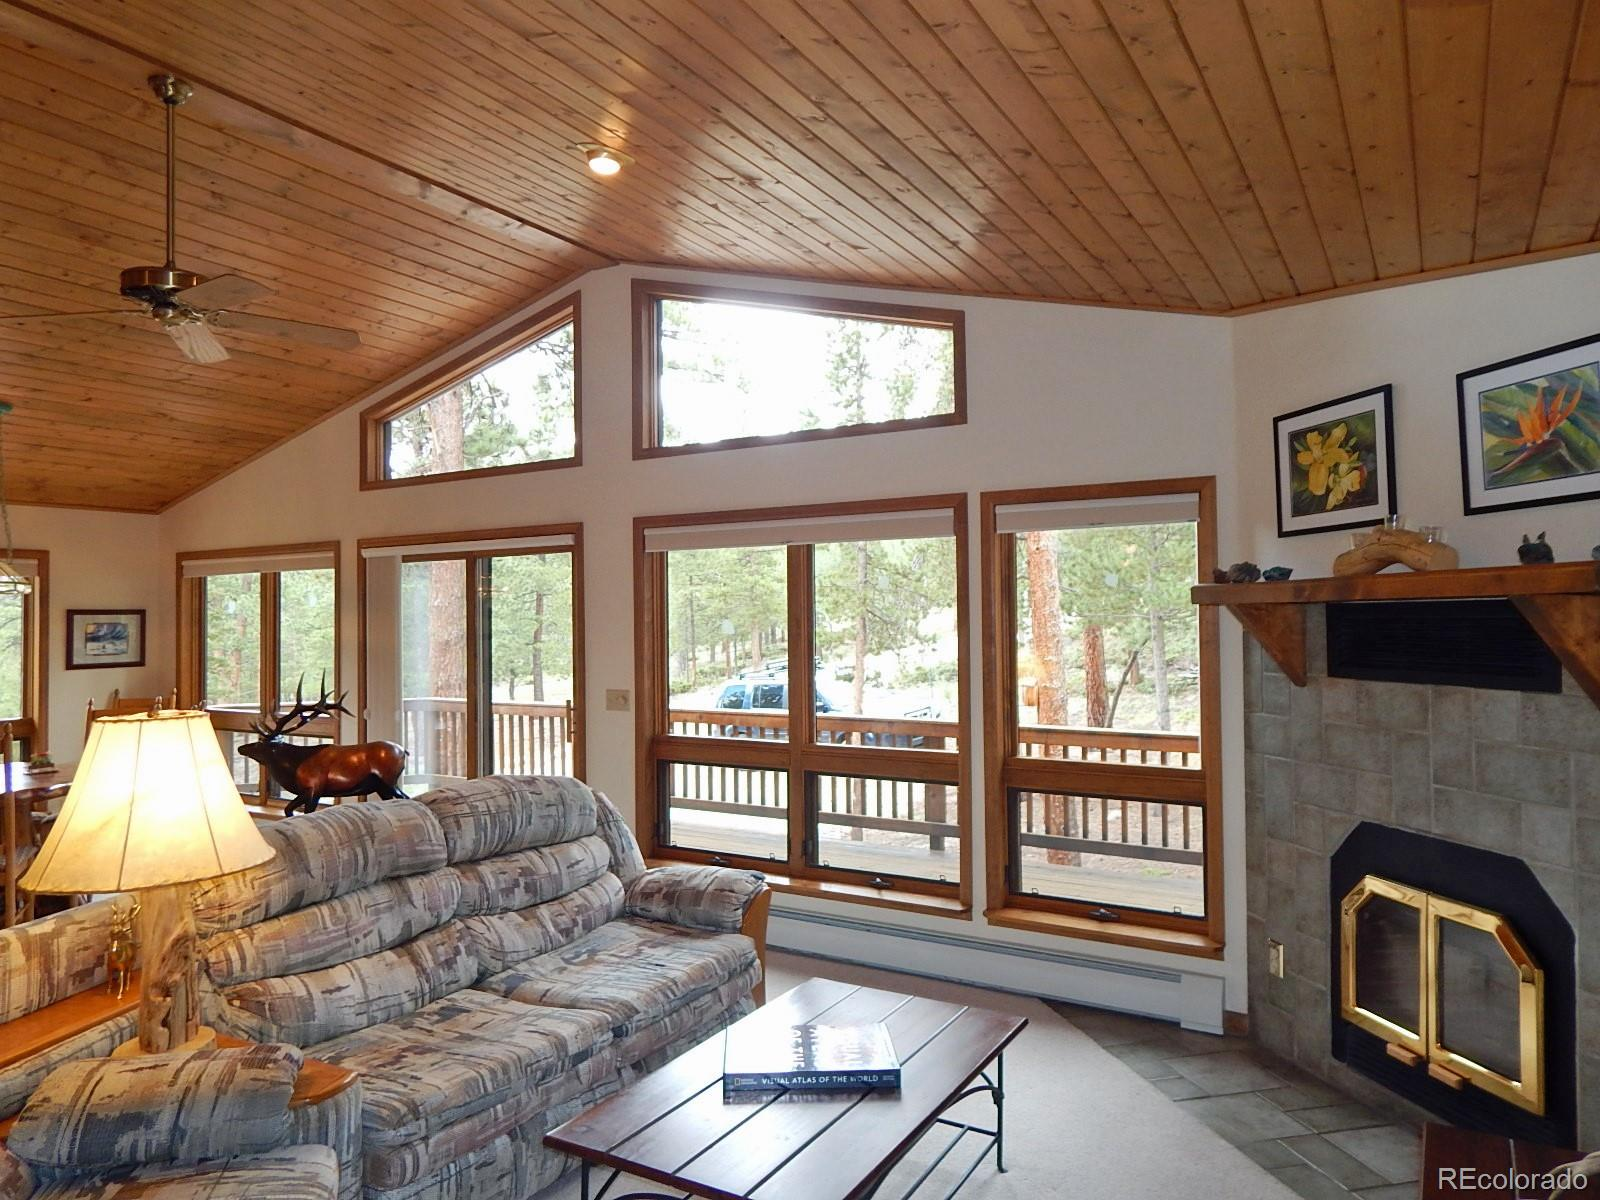 MLS# 7606361 - 2 - 30378 National Forest Drive, Buena Vista, CO 81211